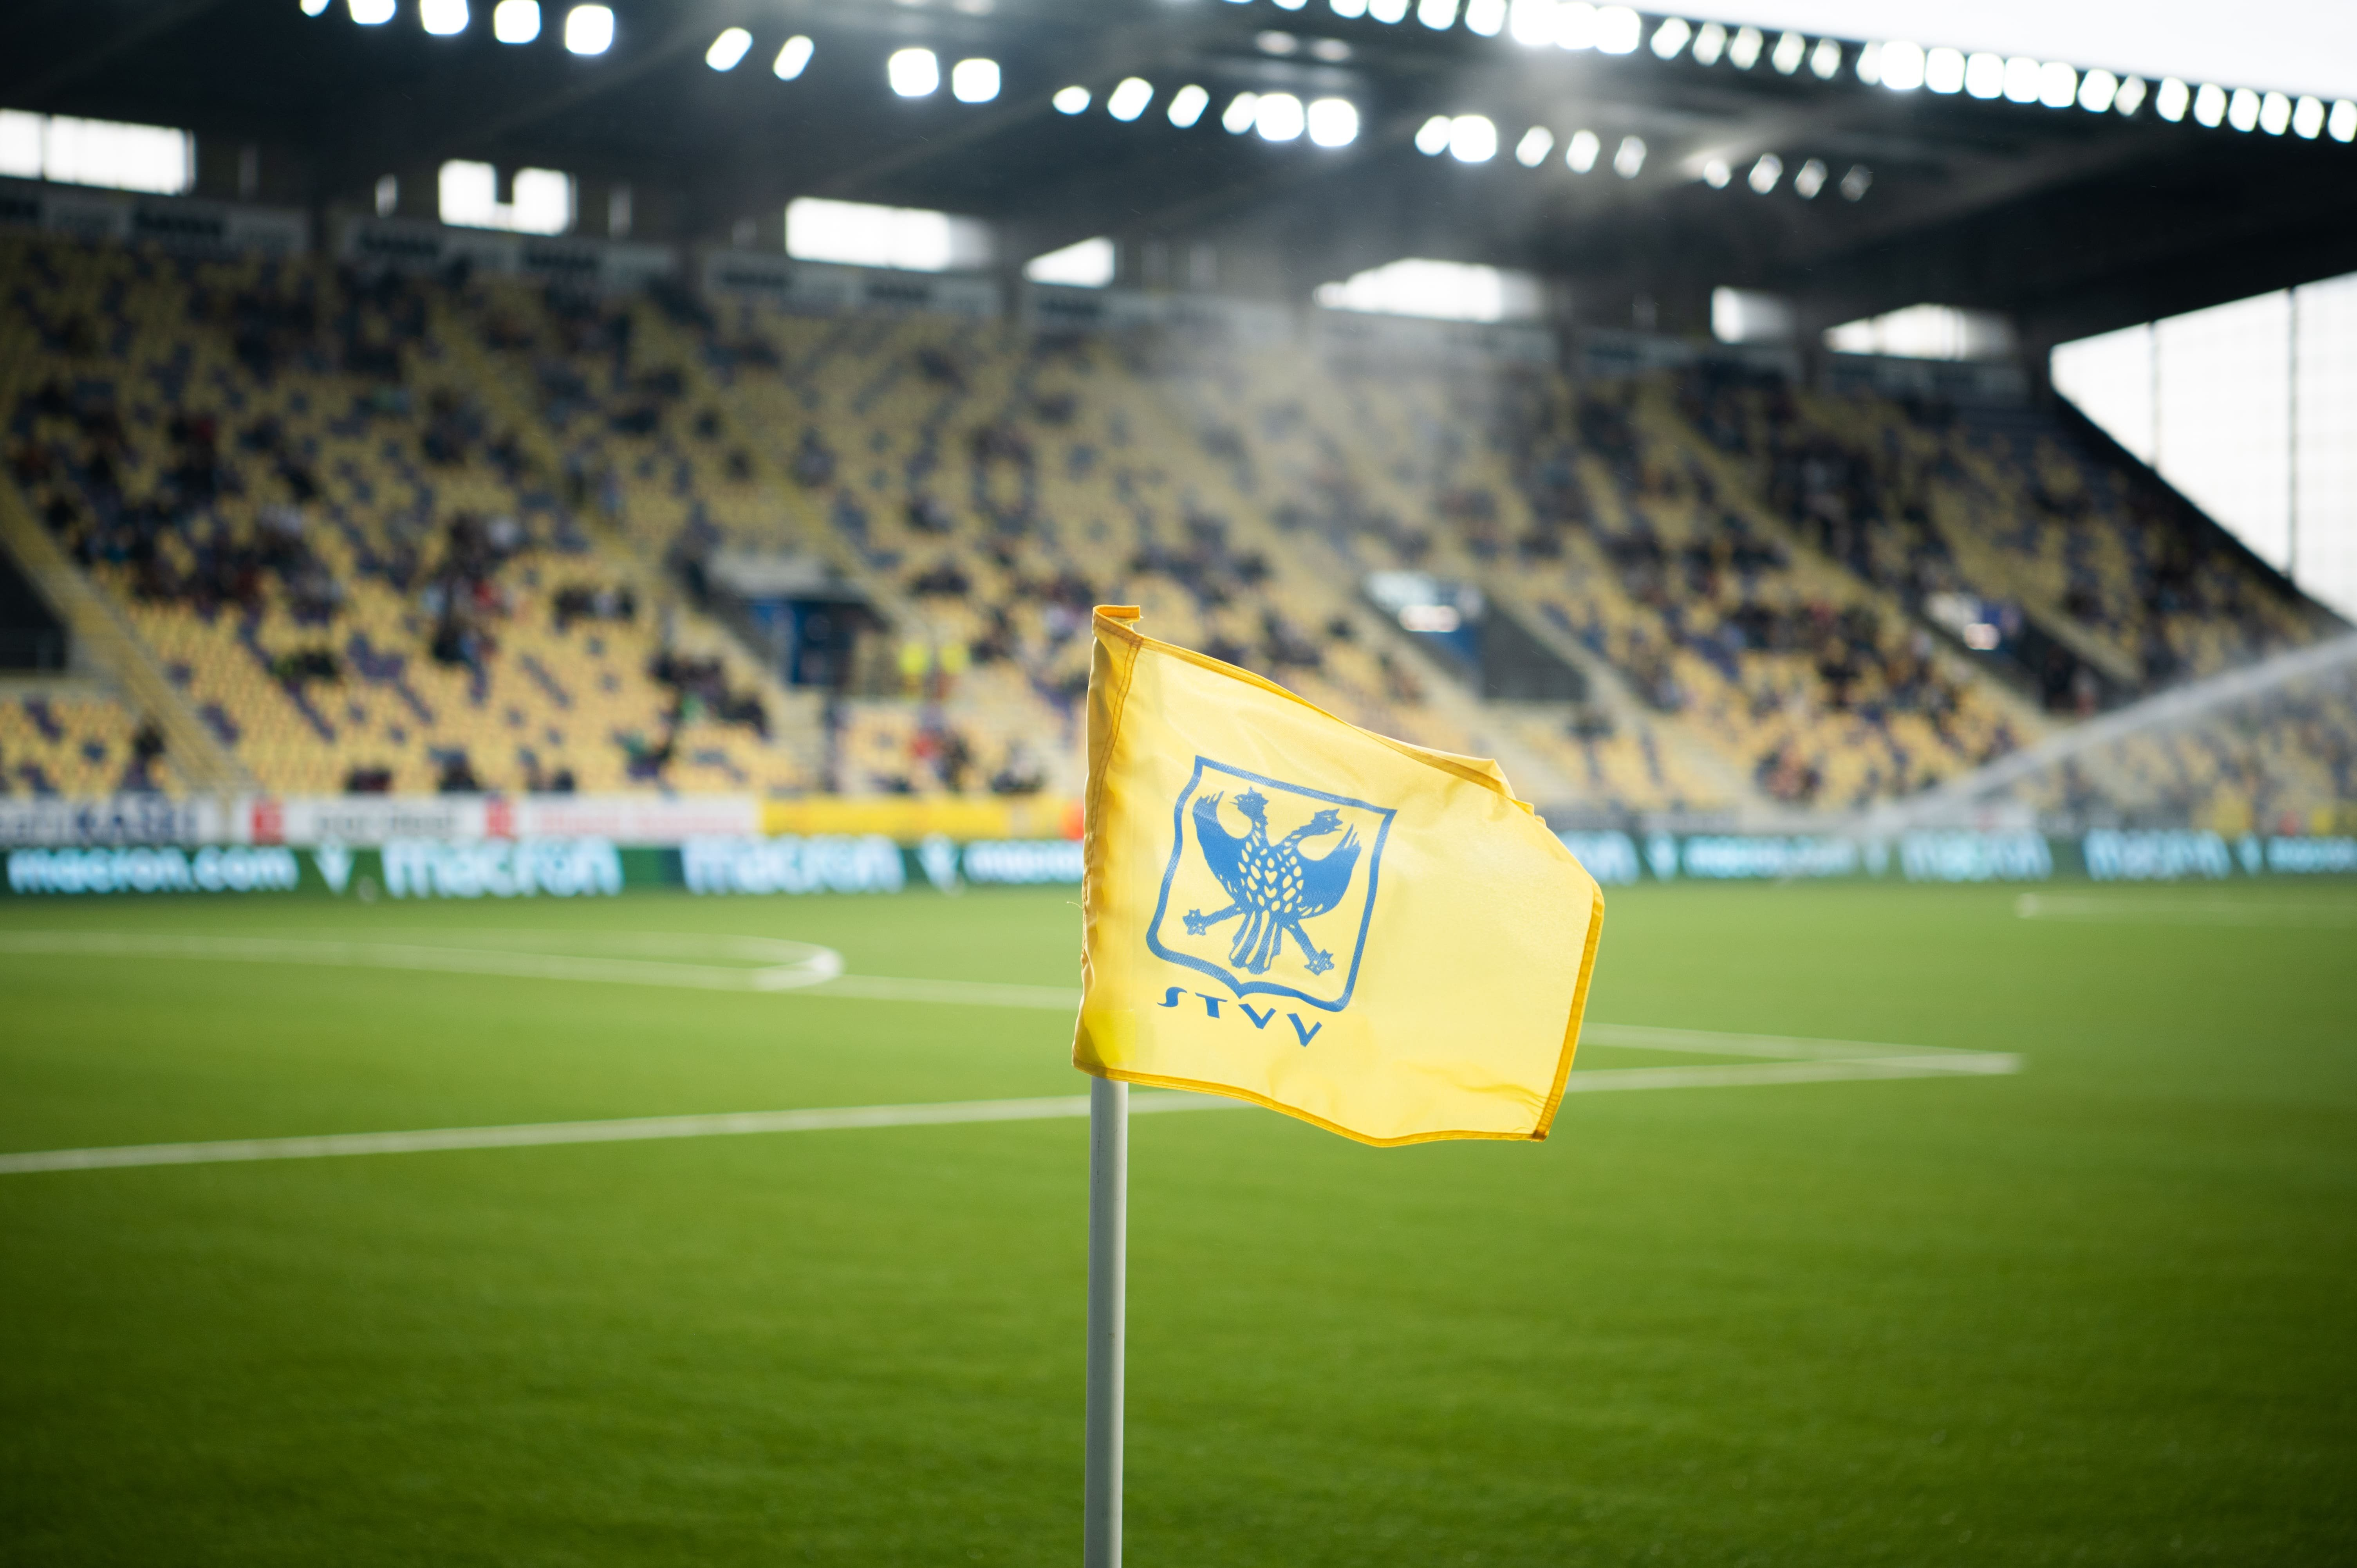 The Limburg Derby is coming